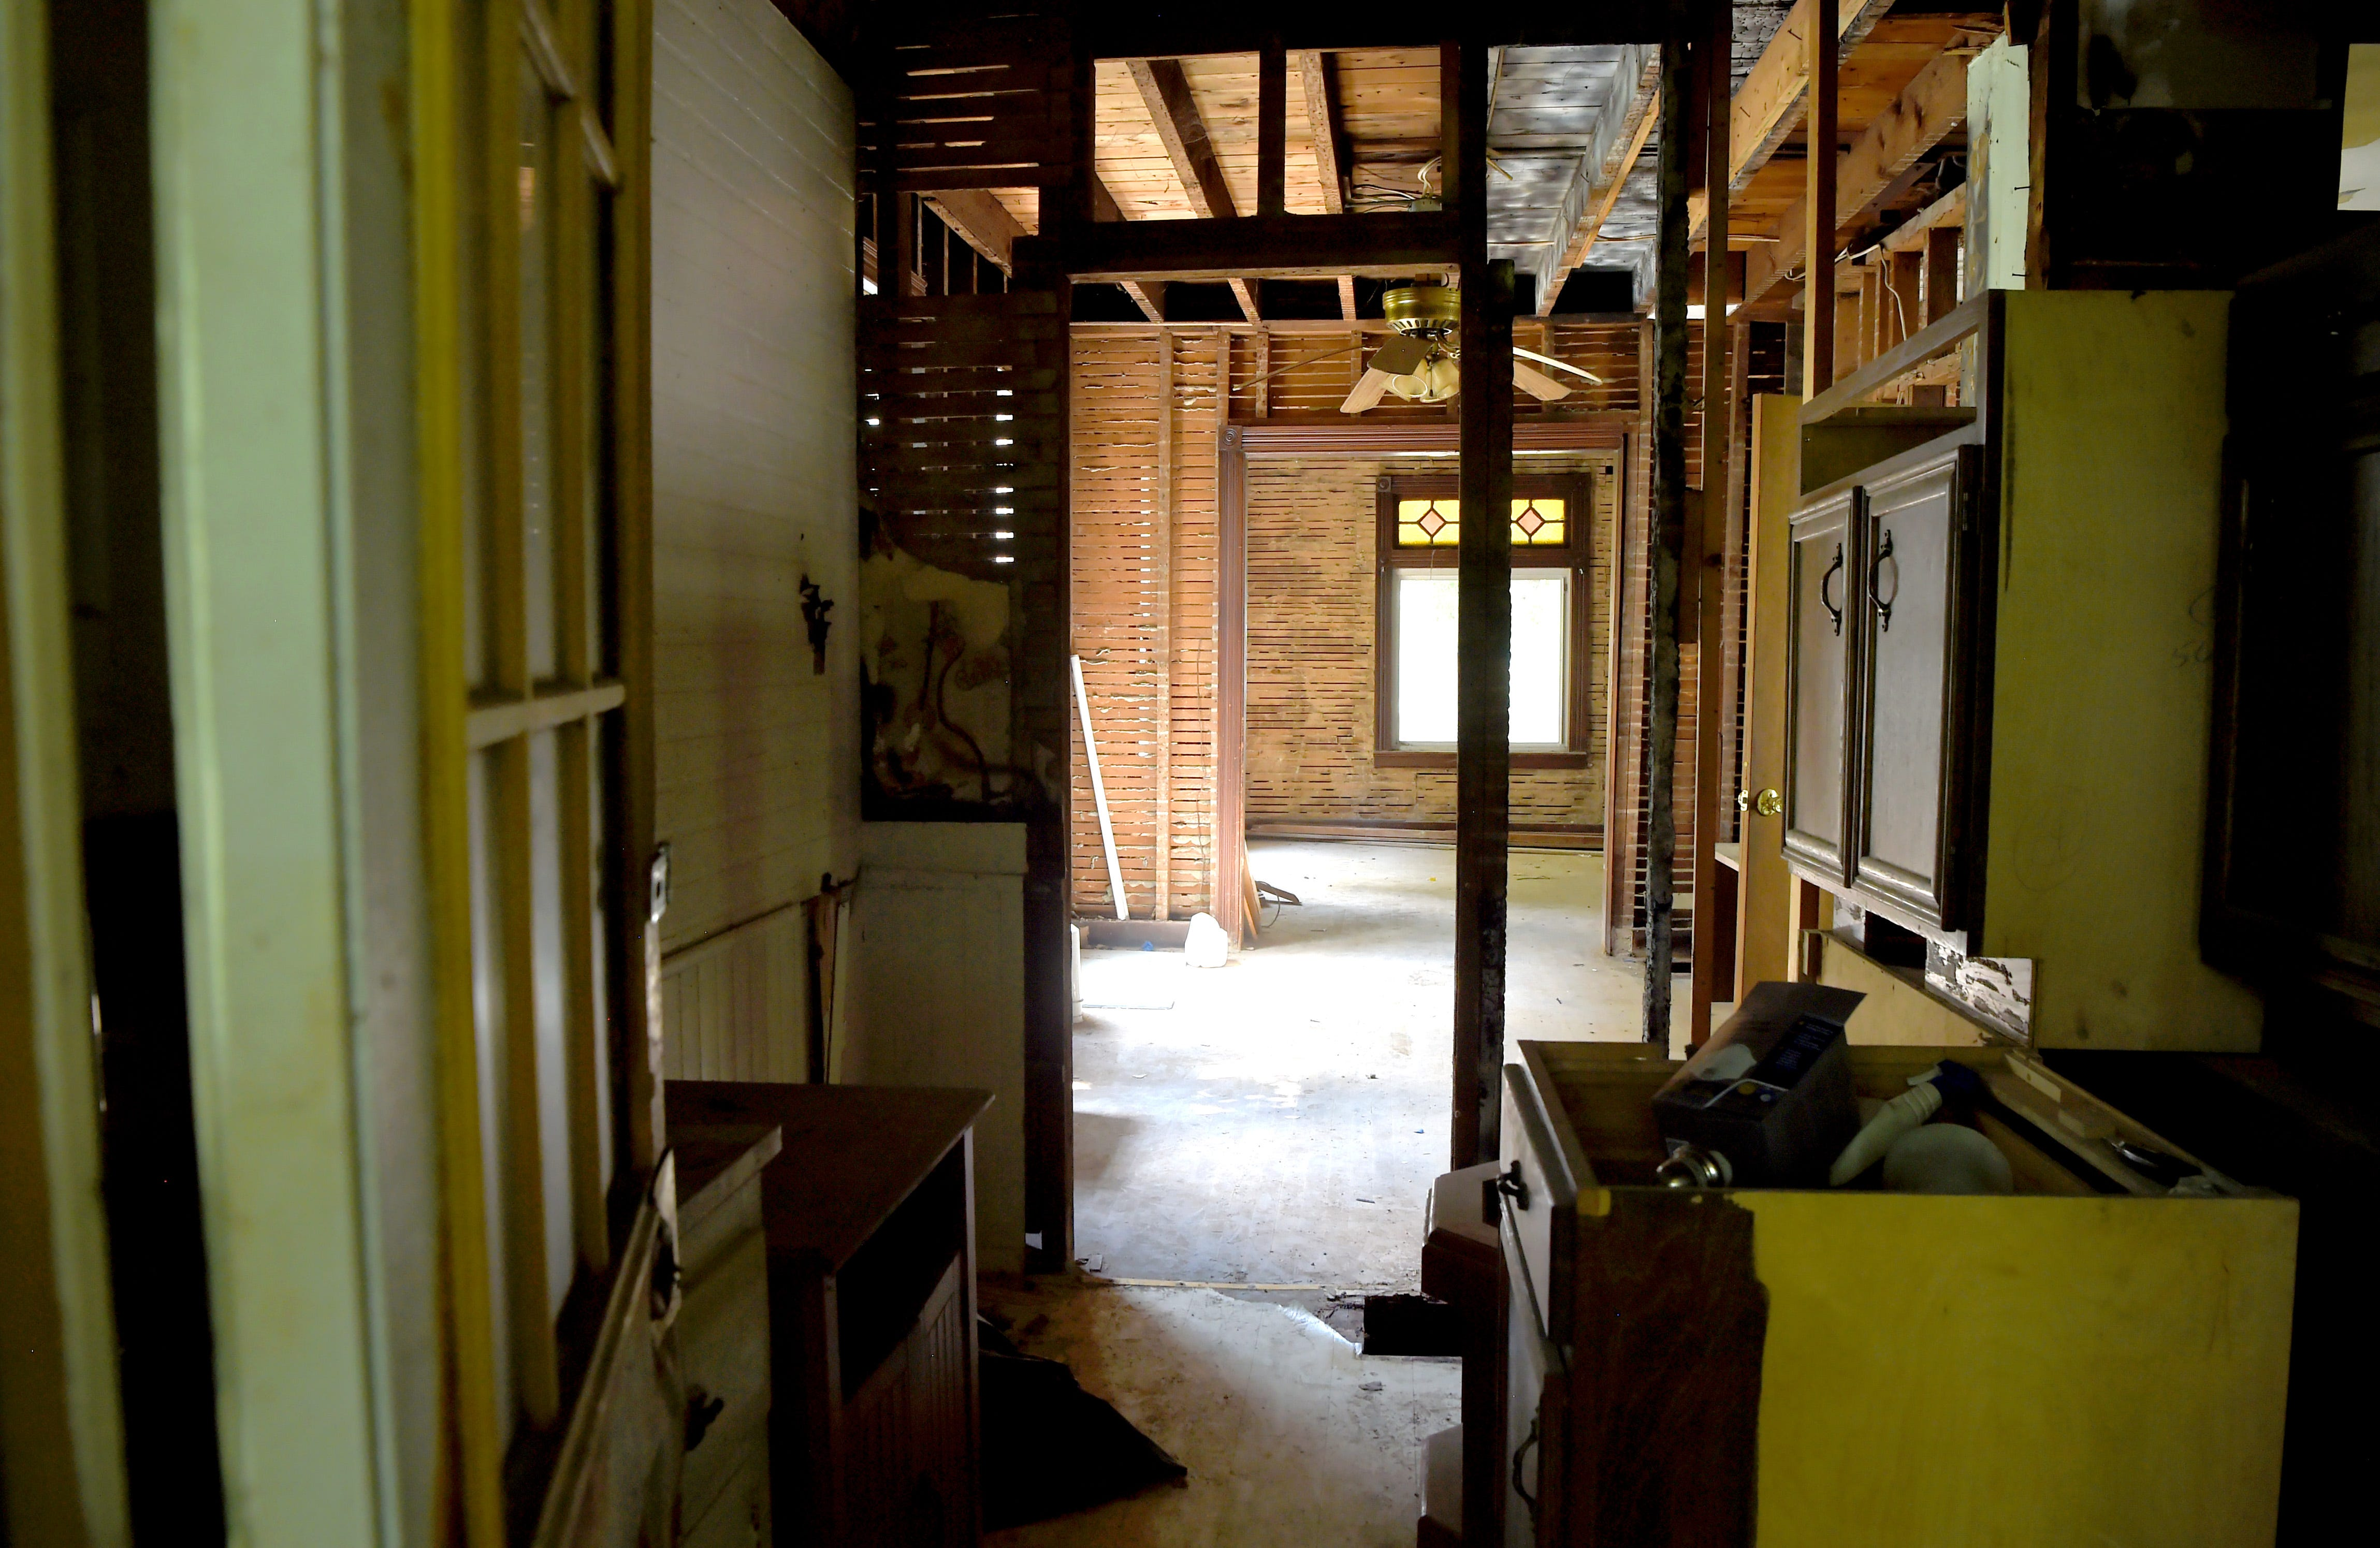 Inside 6 1/2 Sturges St. in Binghamton on July 2, 2020, where Cheri Lindsey was murdered in 1984. Cheri, a 12-year-old East Middle School student, was murdered while delivering newspapers.